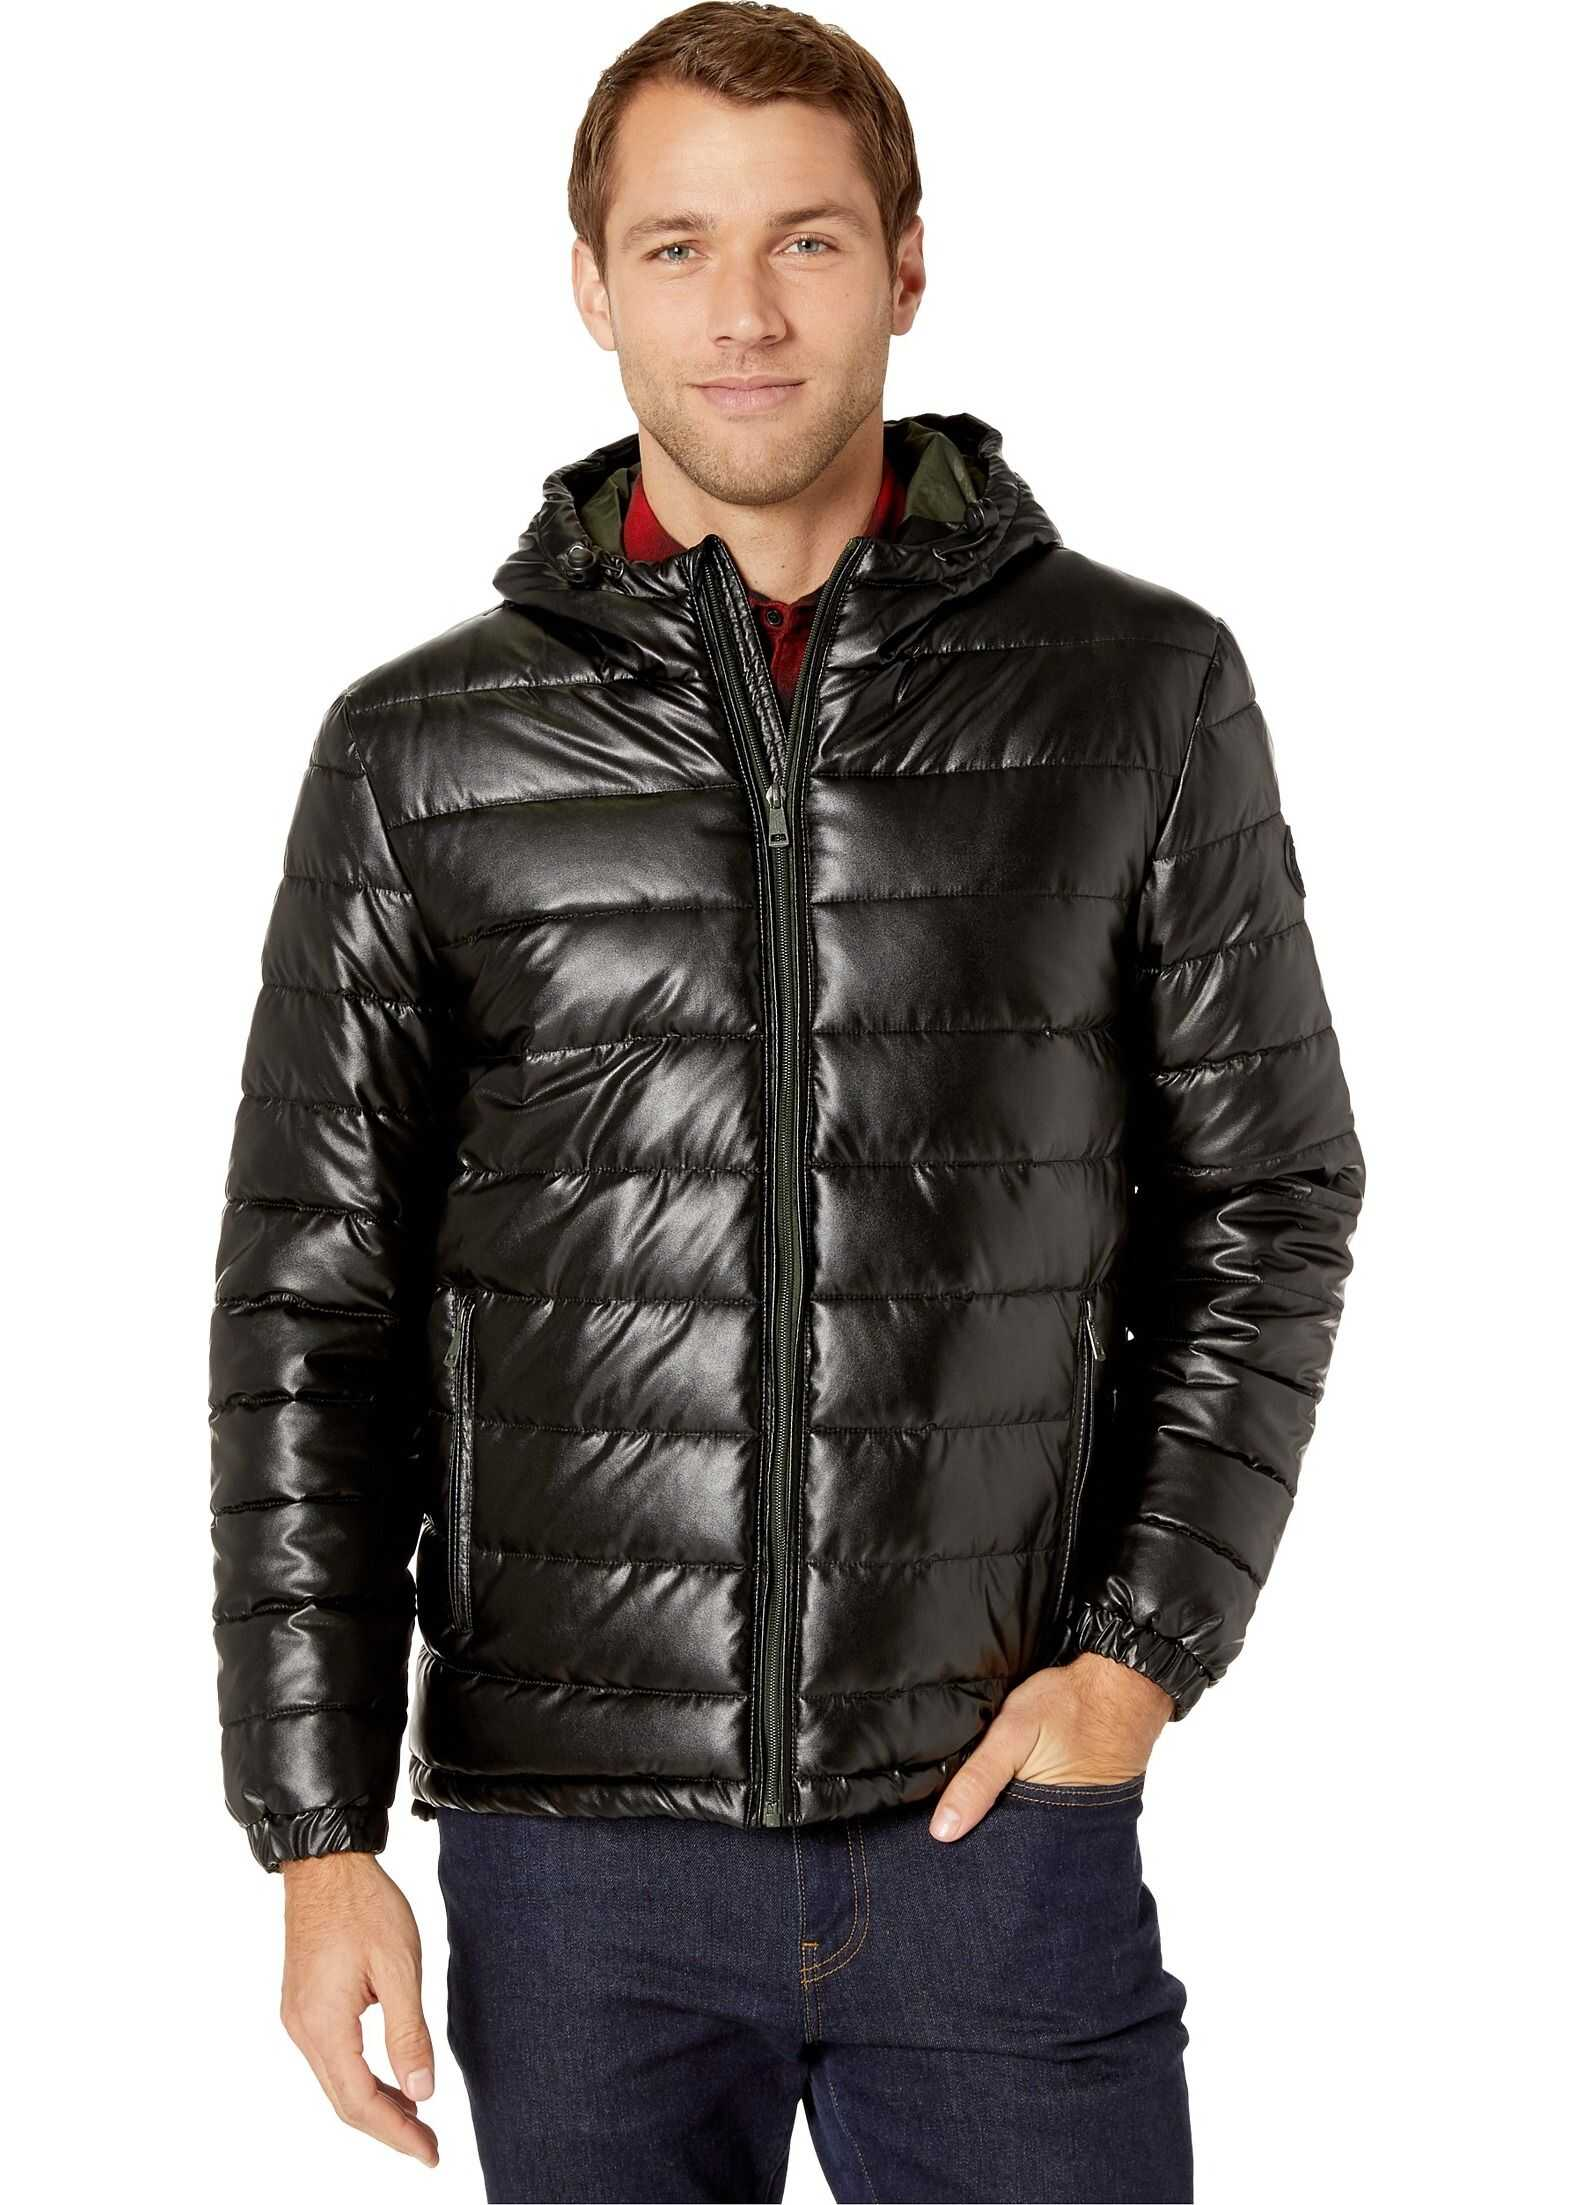 Cole Haan Faux Leather Faux Down Jacket Black/Olive Camo